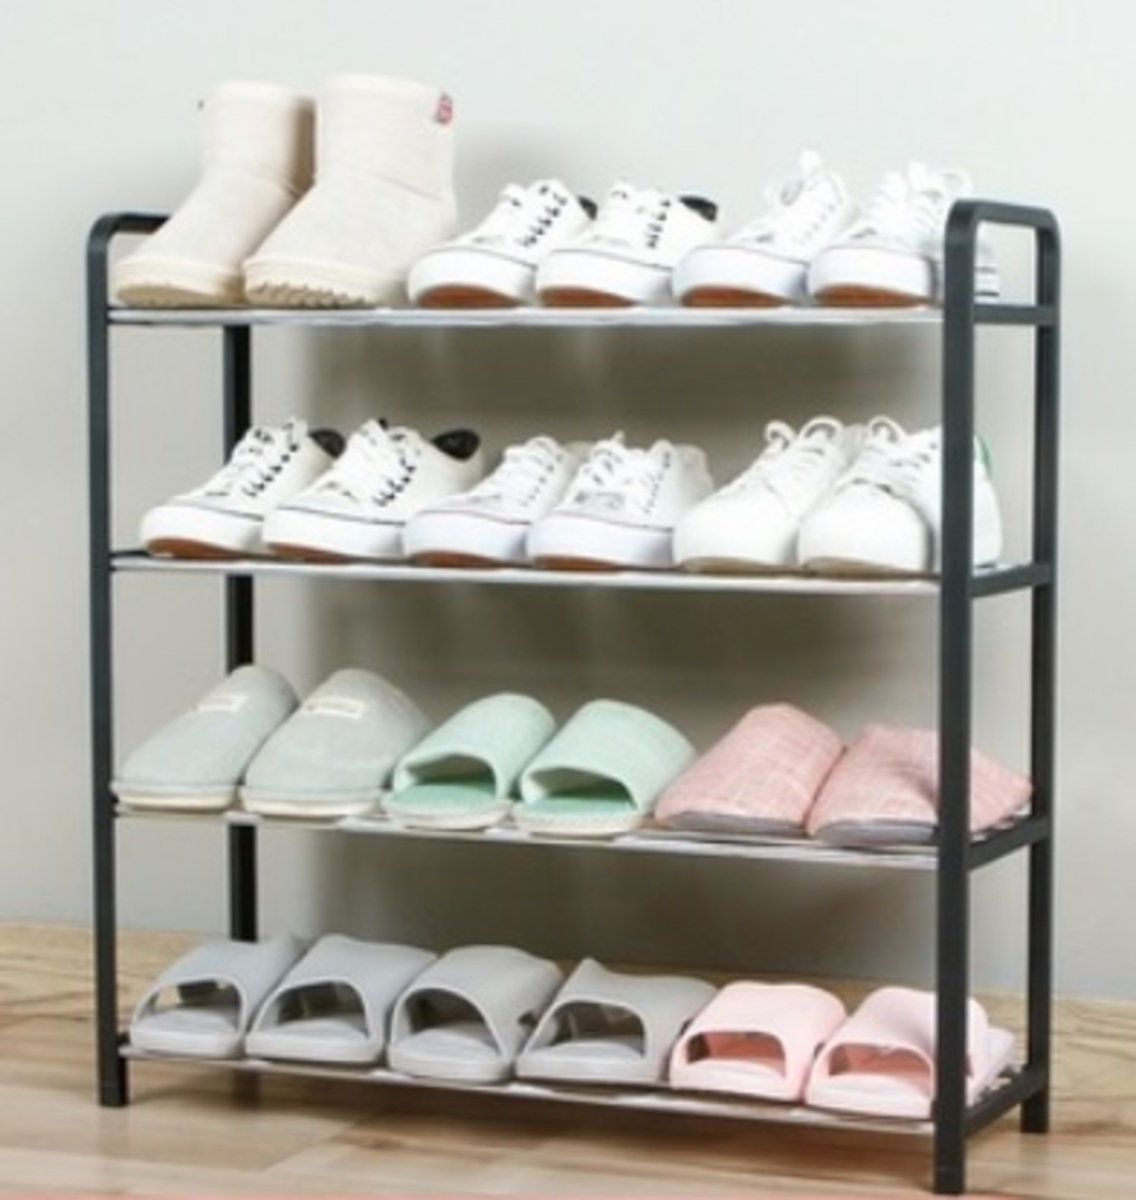 Four-layer shoe rack